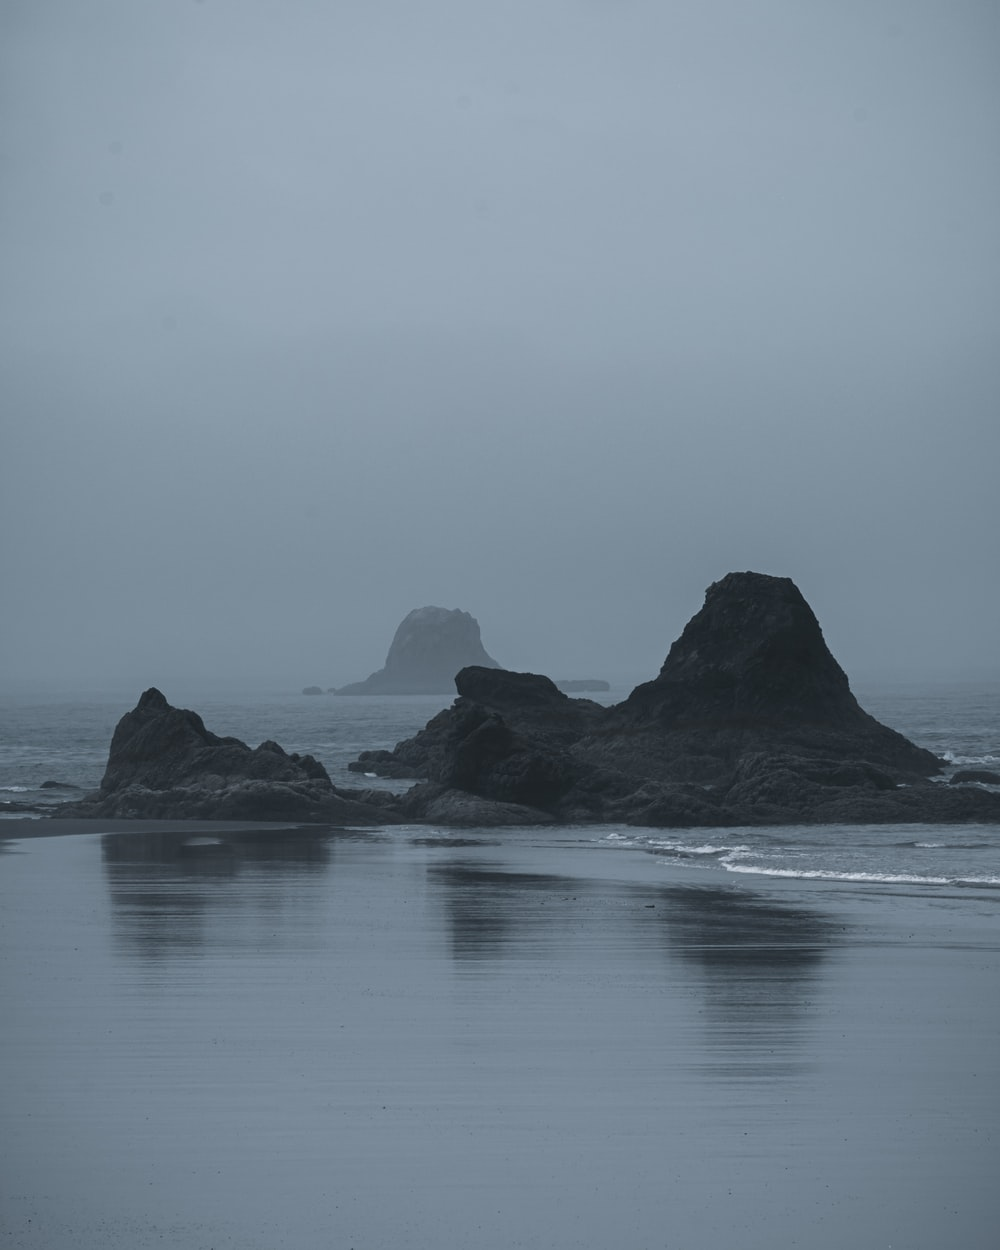 black rock formation on body of water during daytime